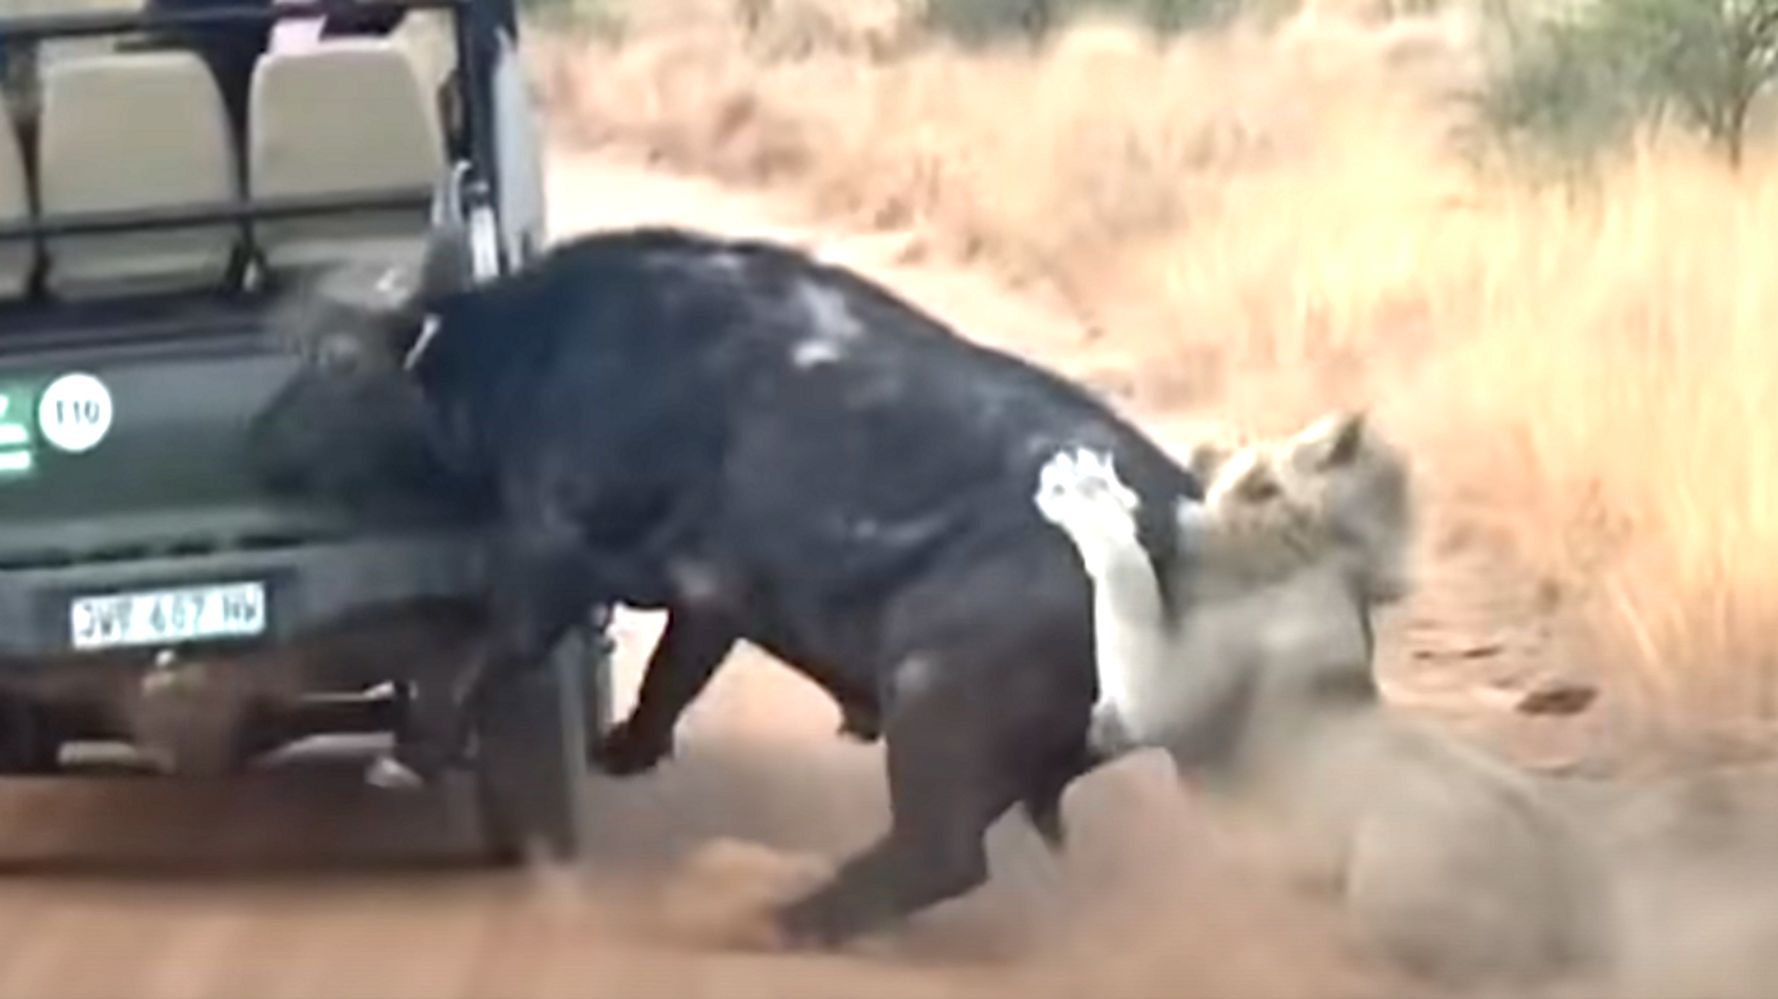 Lions Attack Buffalo, Buffalo Rams Jeep In Chaotic Chase